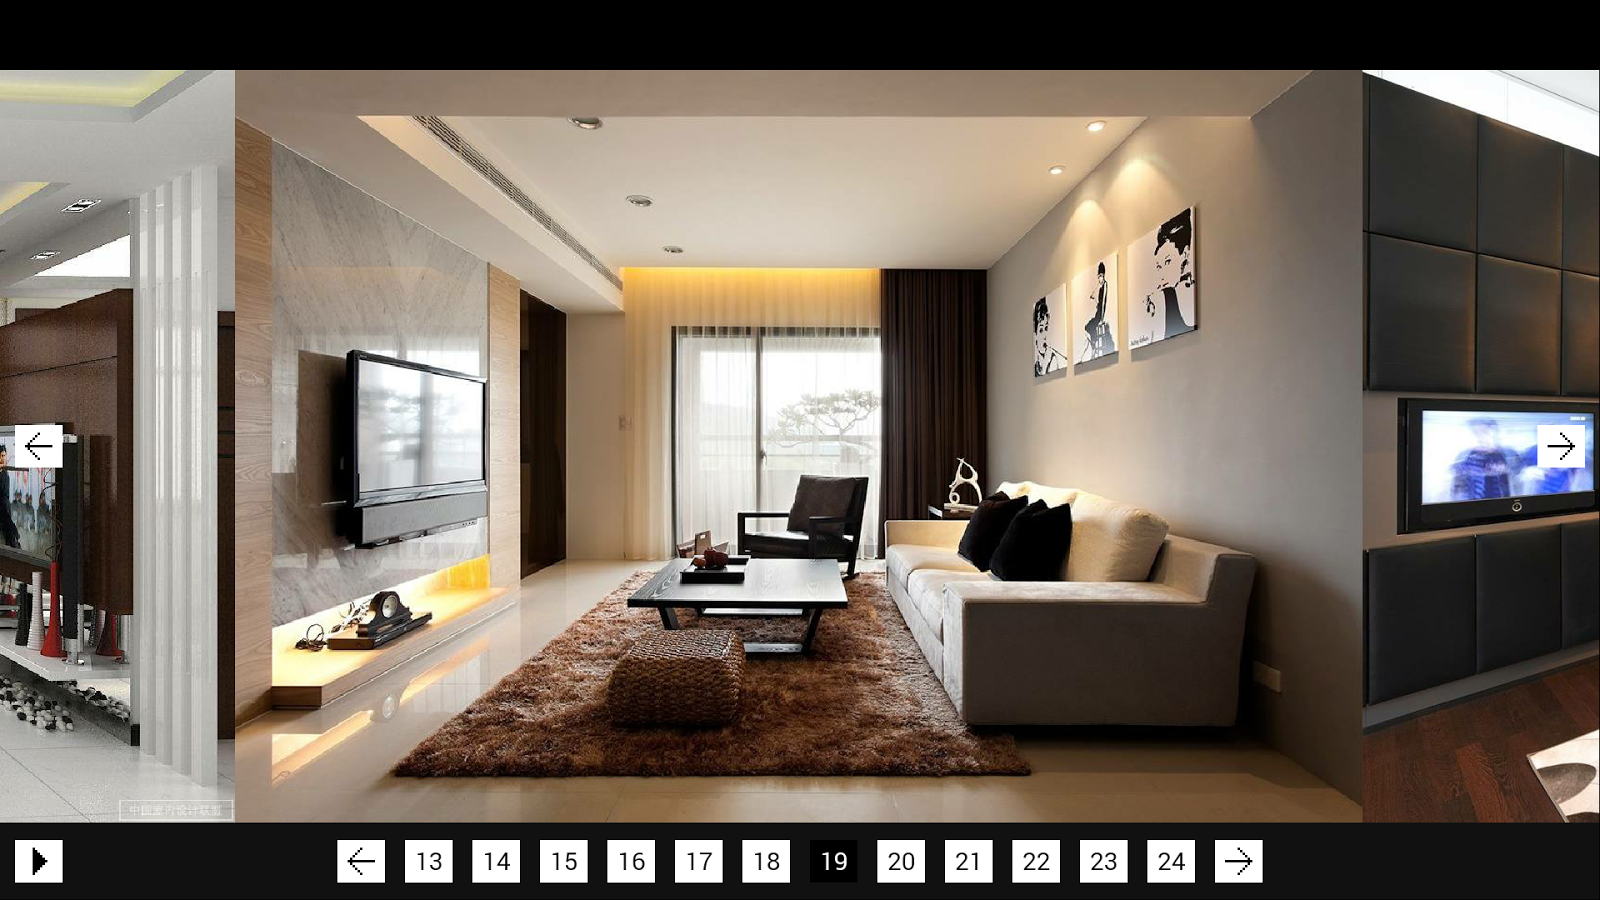 Home interior design android apps on google play for Interior design apps